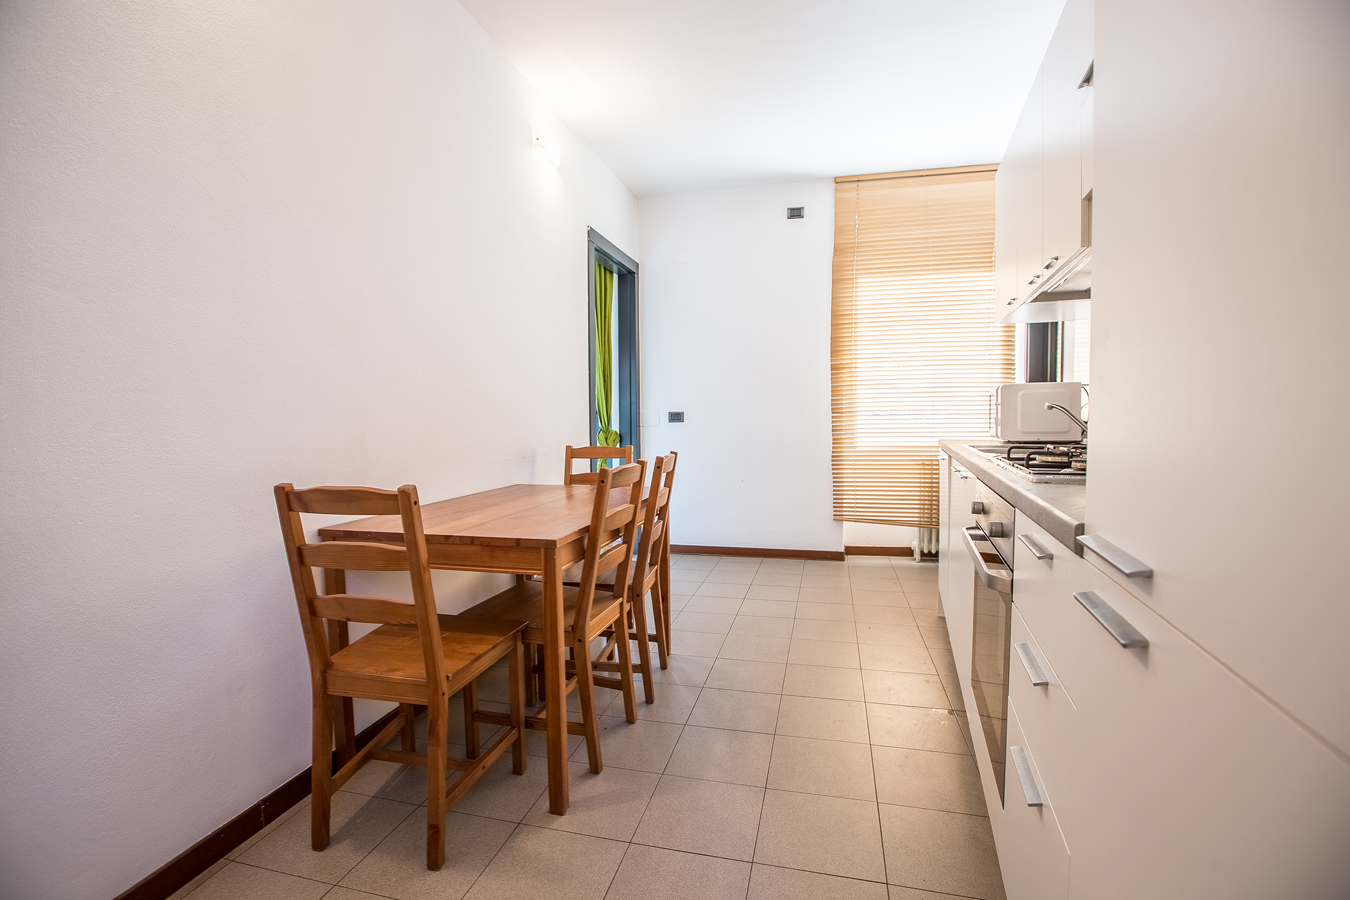 Student Apartment for rent in Via Gaetano Osculati, 15, 1° floor, in Milano, Italy